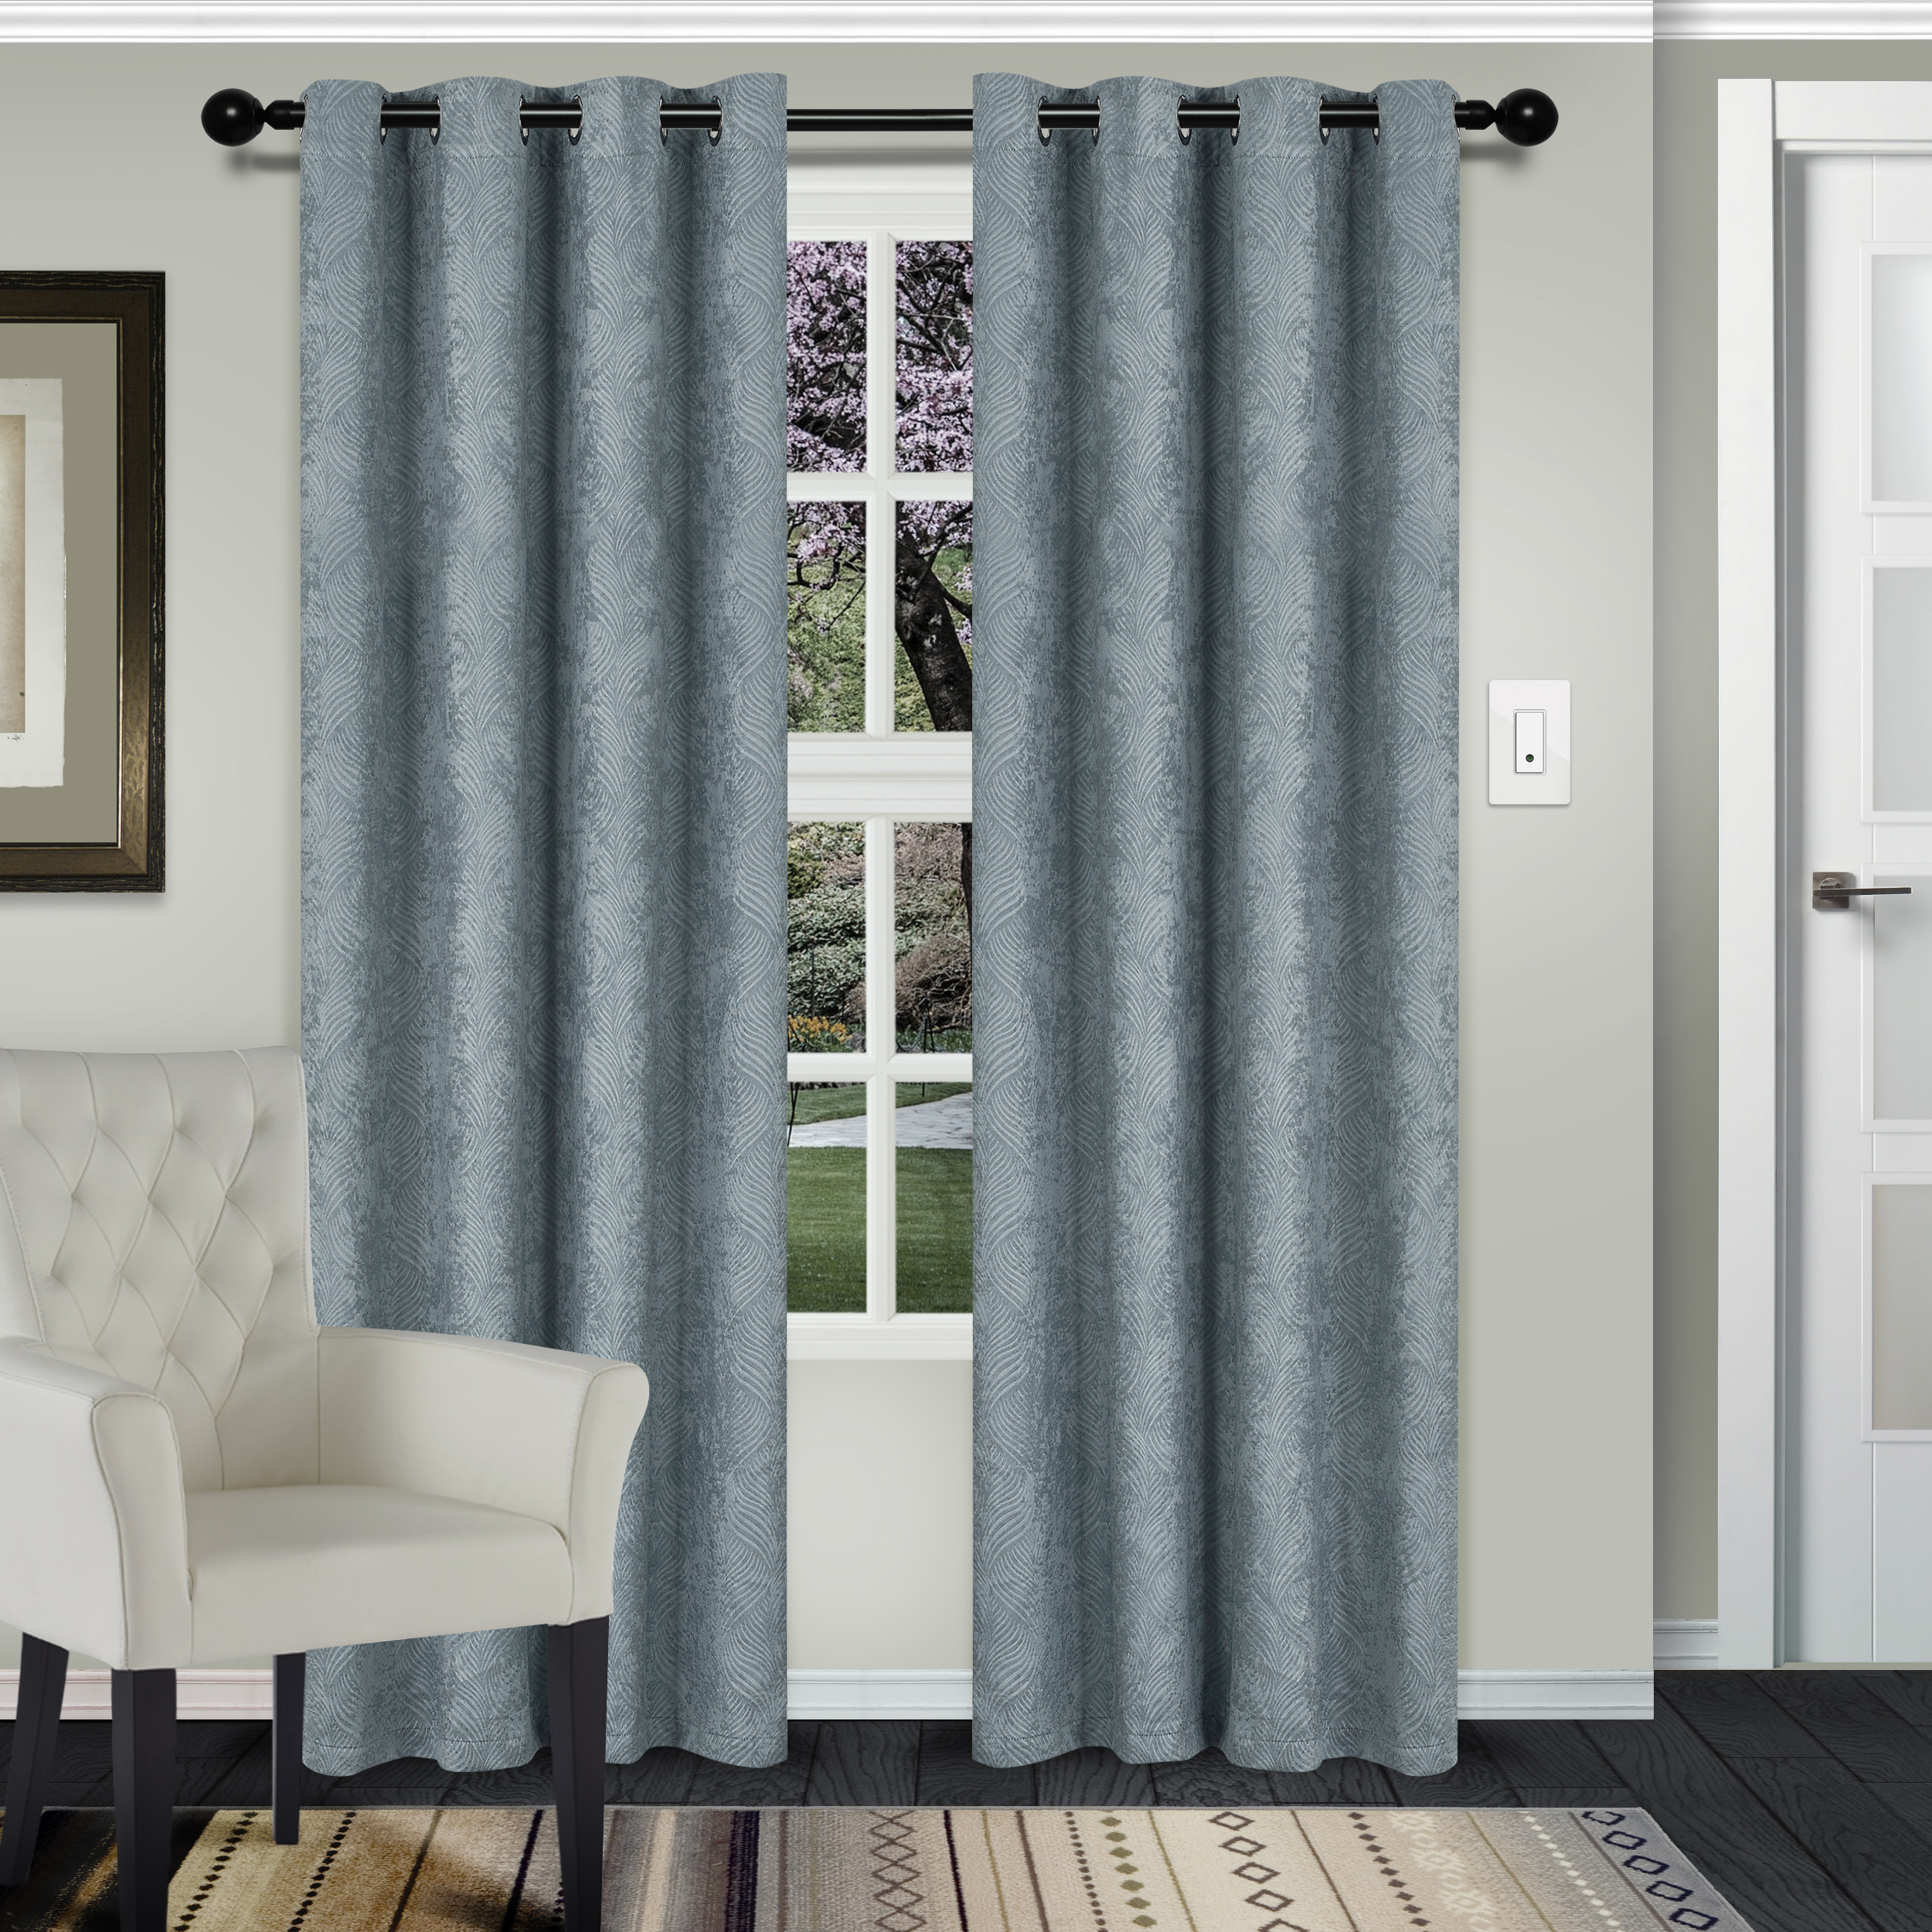 Recent Superior Waverly Textured Blackout Curtain Set Of 2, Thermal In Superior Solid Insulated Thermal Blackout Grommet Curtain Panel Pairs (Gallery 6 of 20)